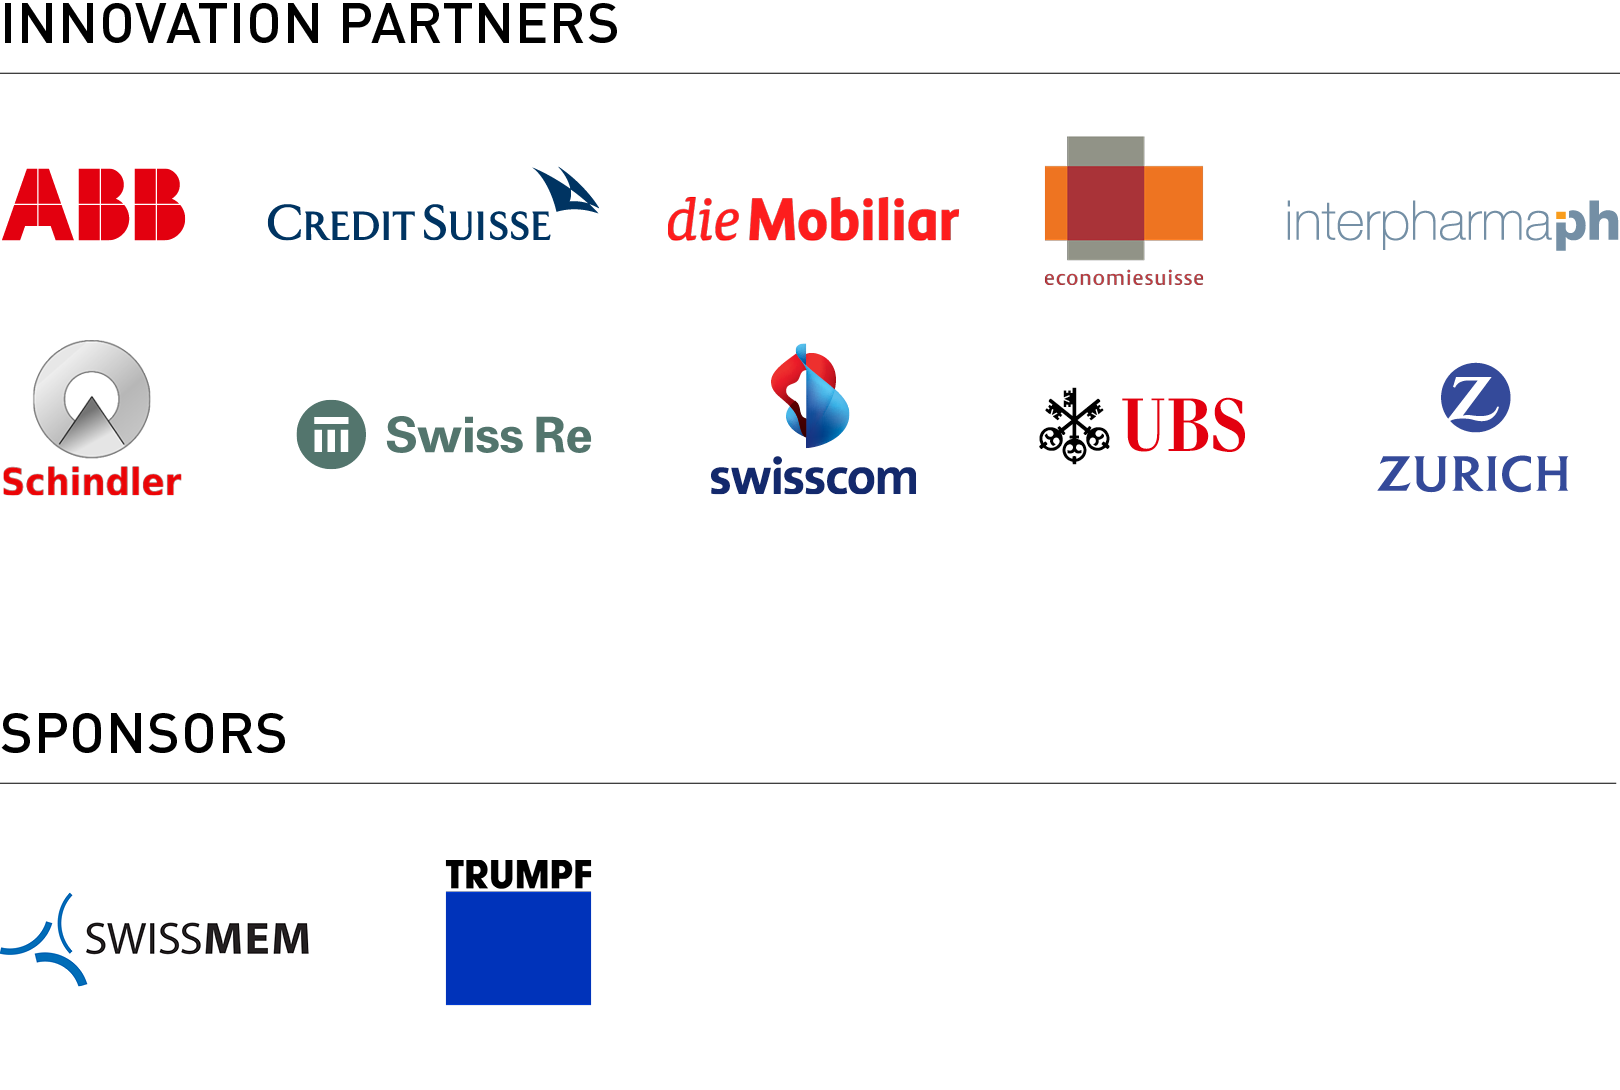 Innovation Partners